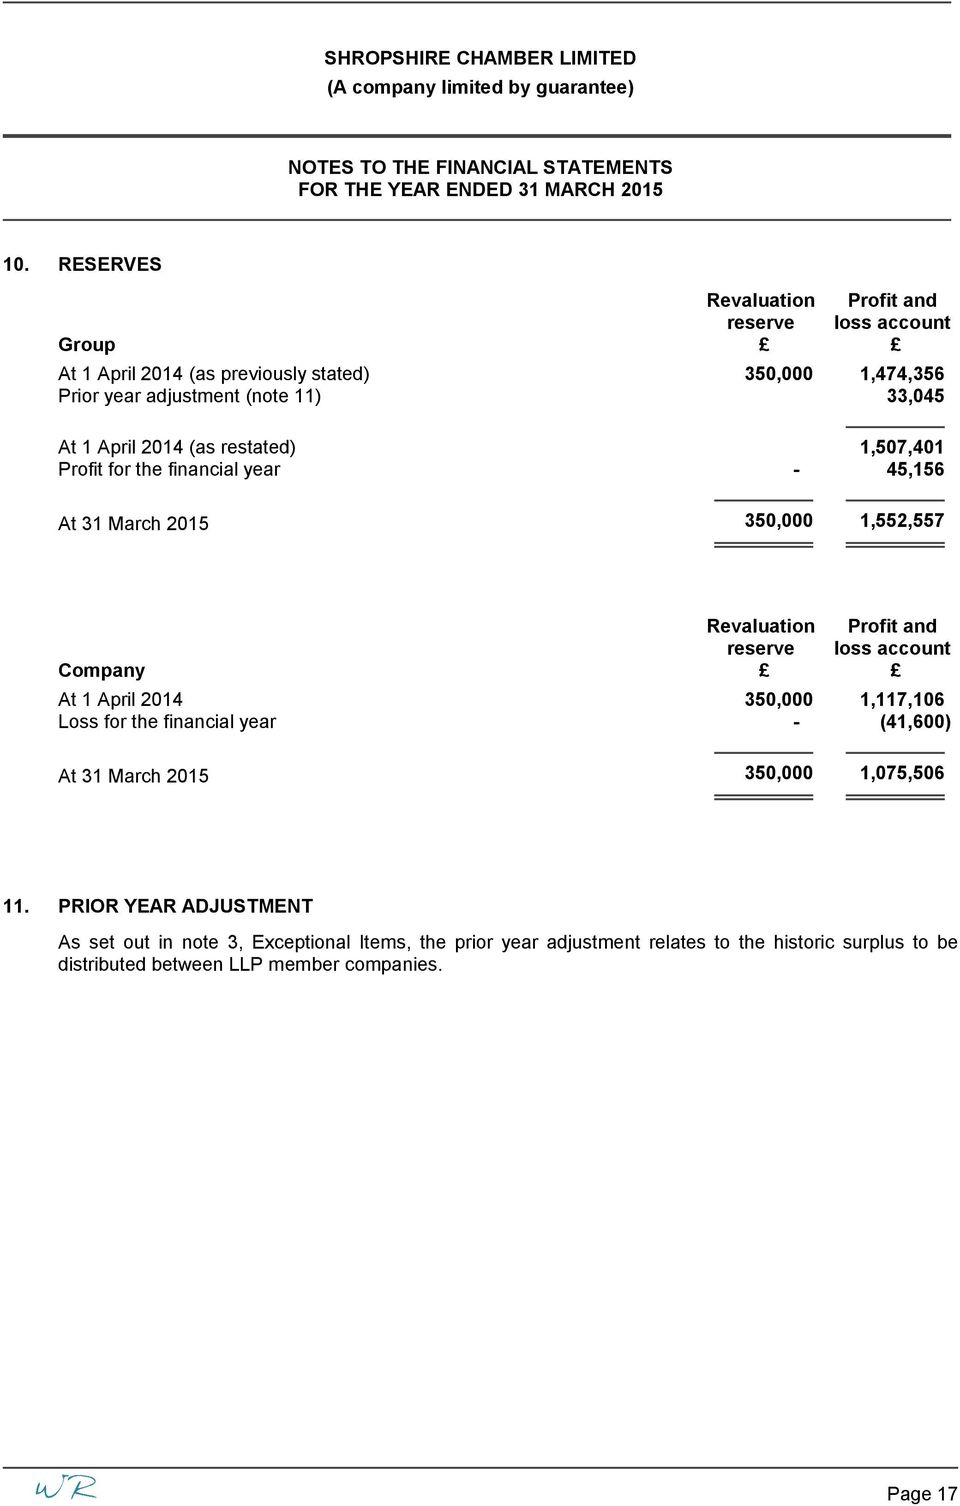 April 2014 (as restated) 1,507,401 Profit for the financial year - 45,156 At 31 March 2015 350,000 1,552,557 Revaluation Profit and reserve loss account Company